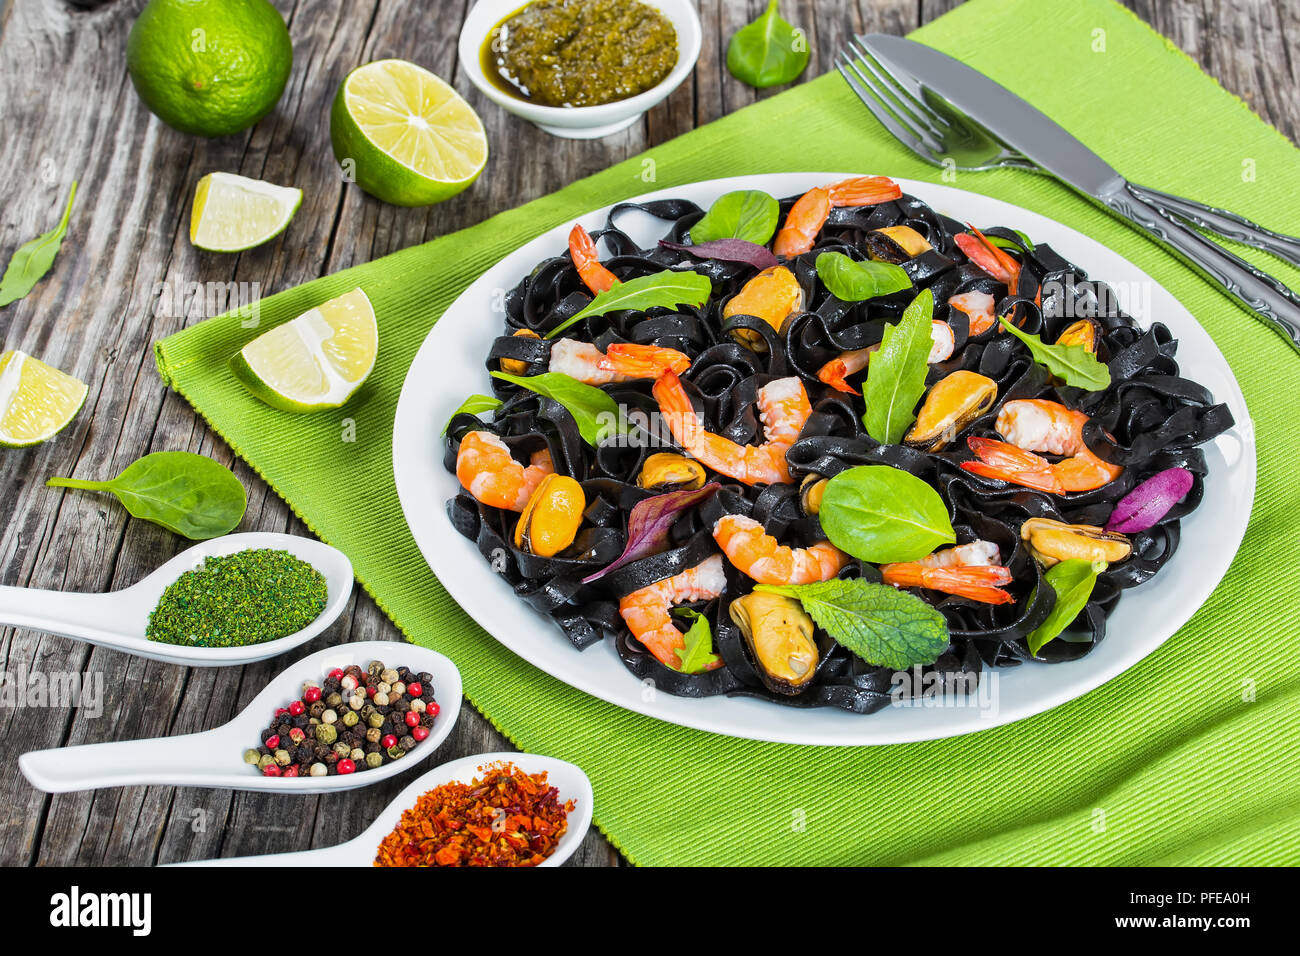 black noodles salad with prawns, mussels, fresh green spinach, lettuce, arugula on white dish on table mat on dark wooden table with lime slices and s - Stock Image